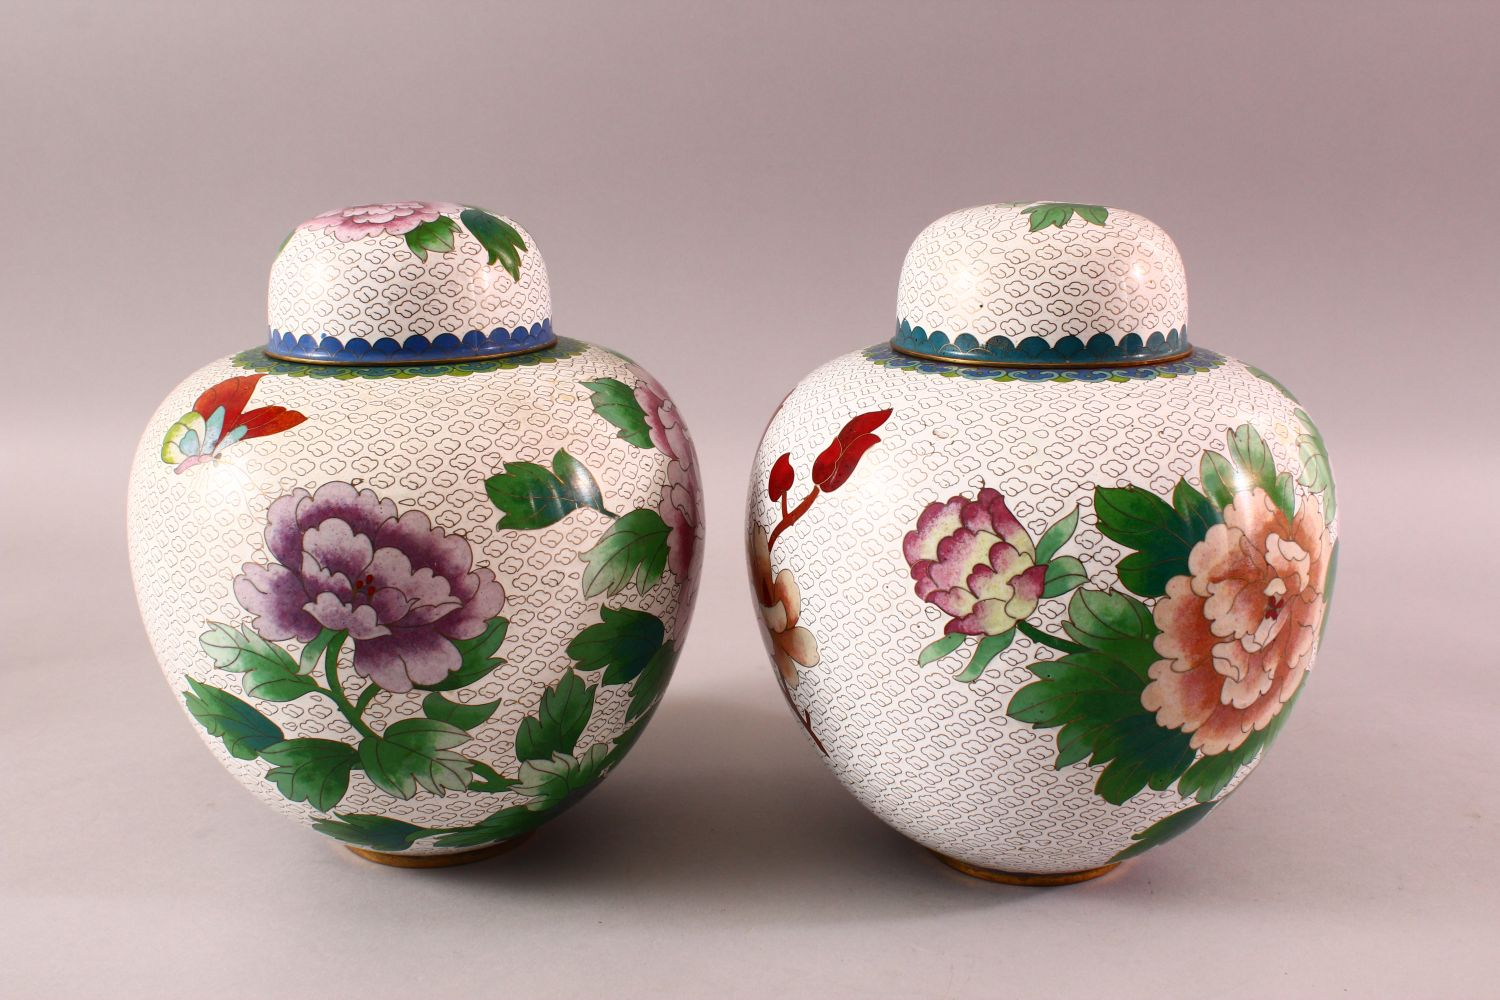 A PAIR OF CHINESE CLOISONNE GINGER JARS & COVERS, each with a white ground and floral decoration, - Image 2 of 7